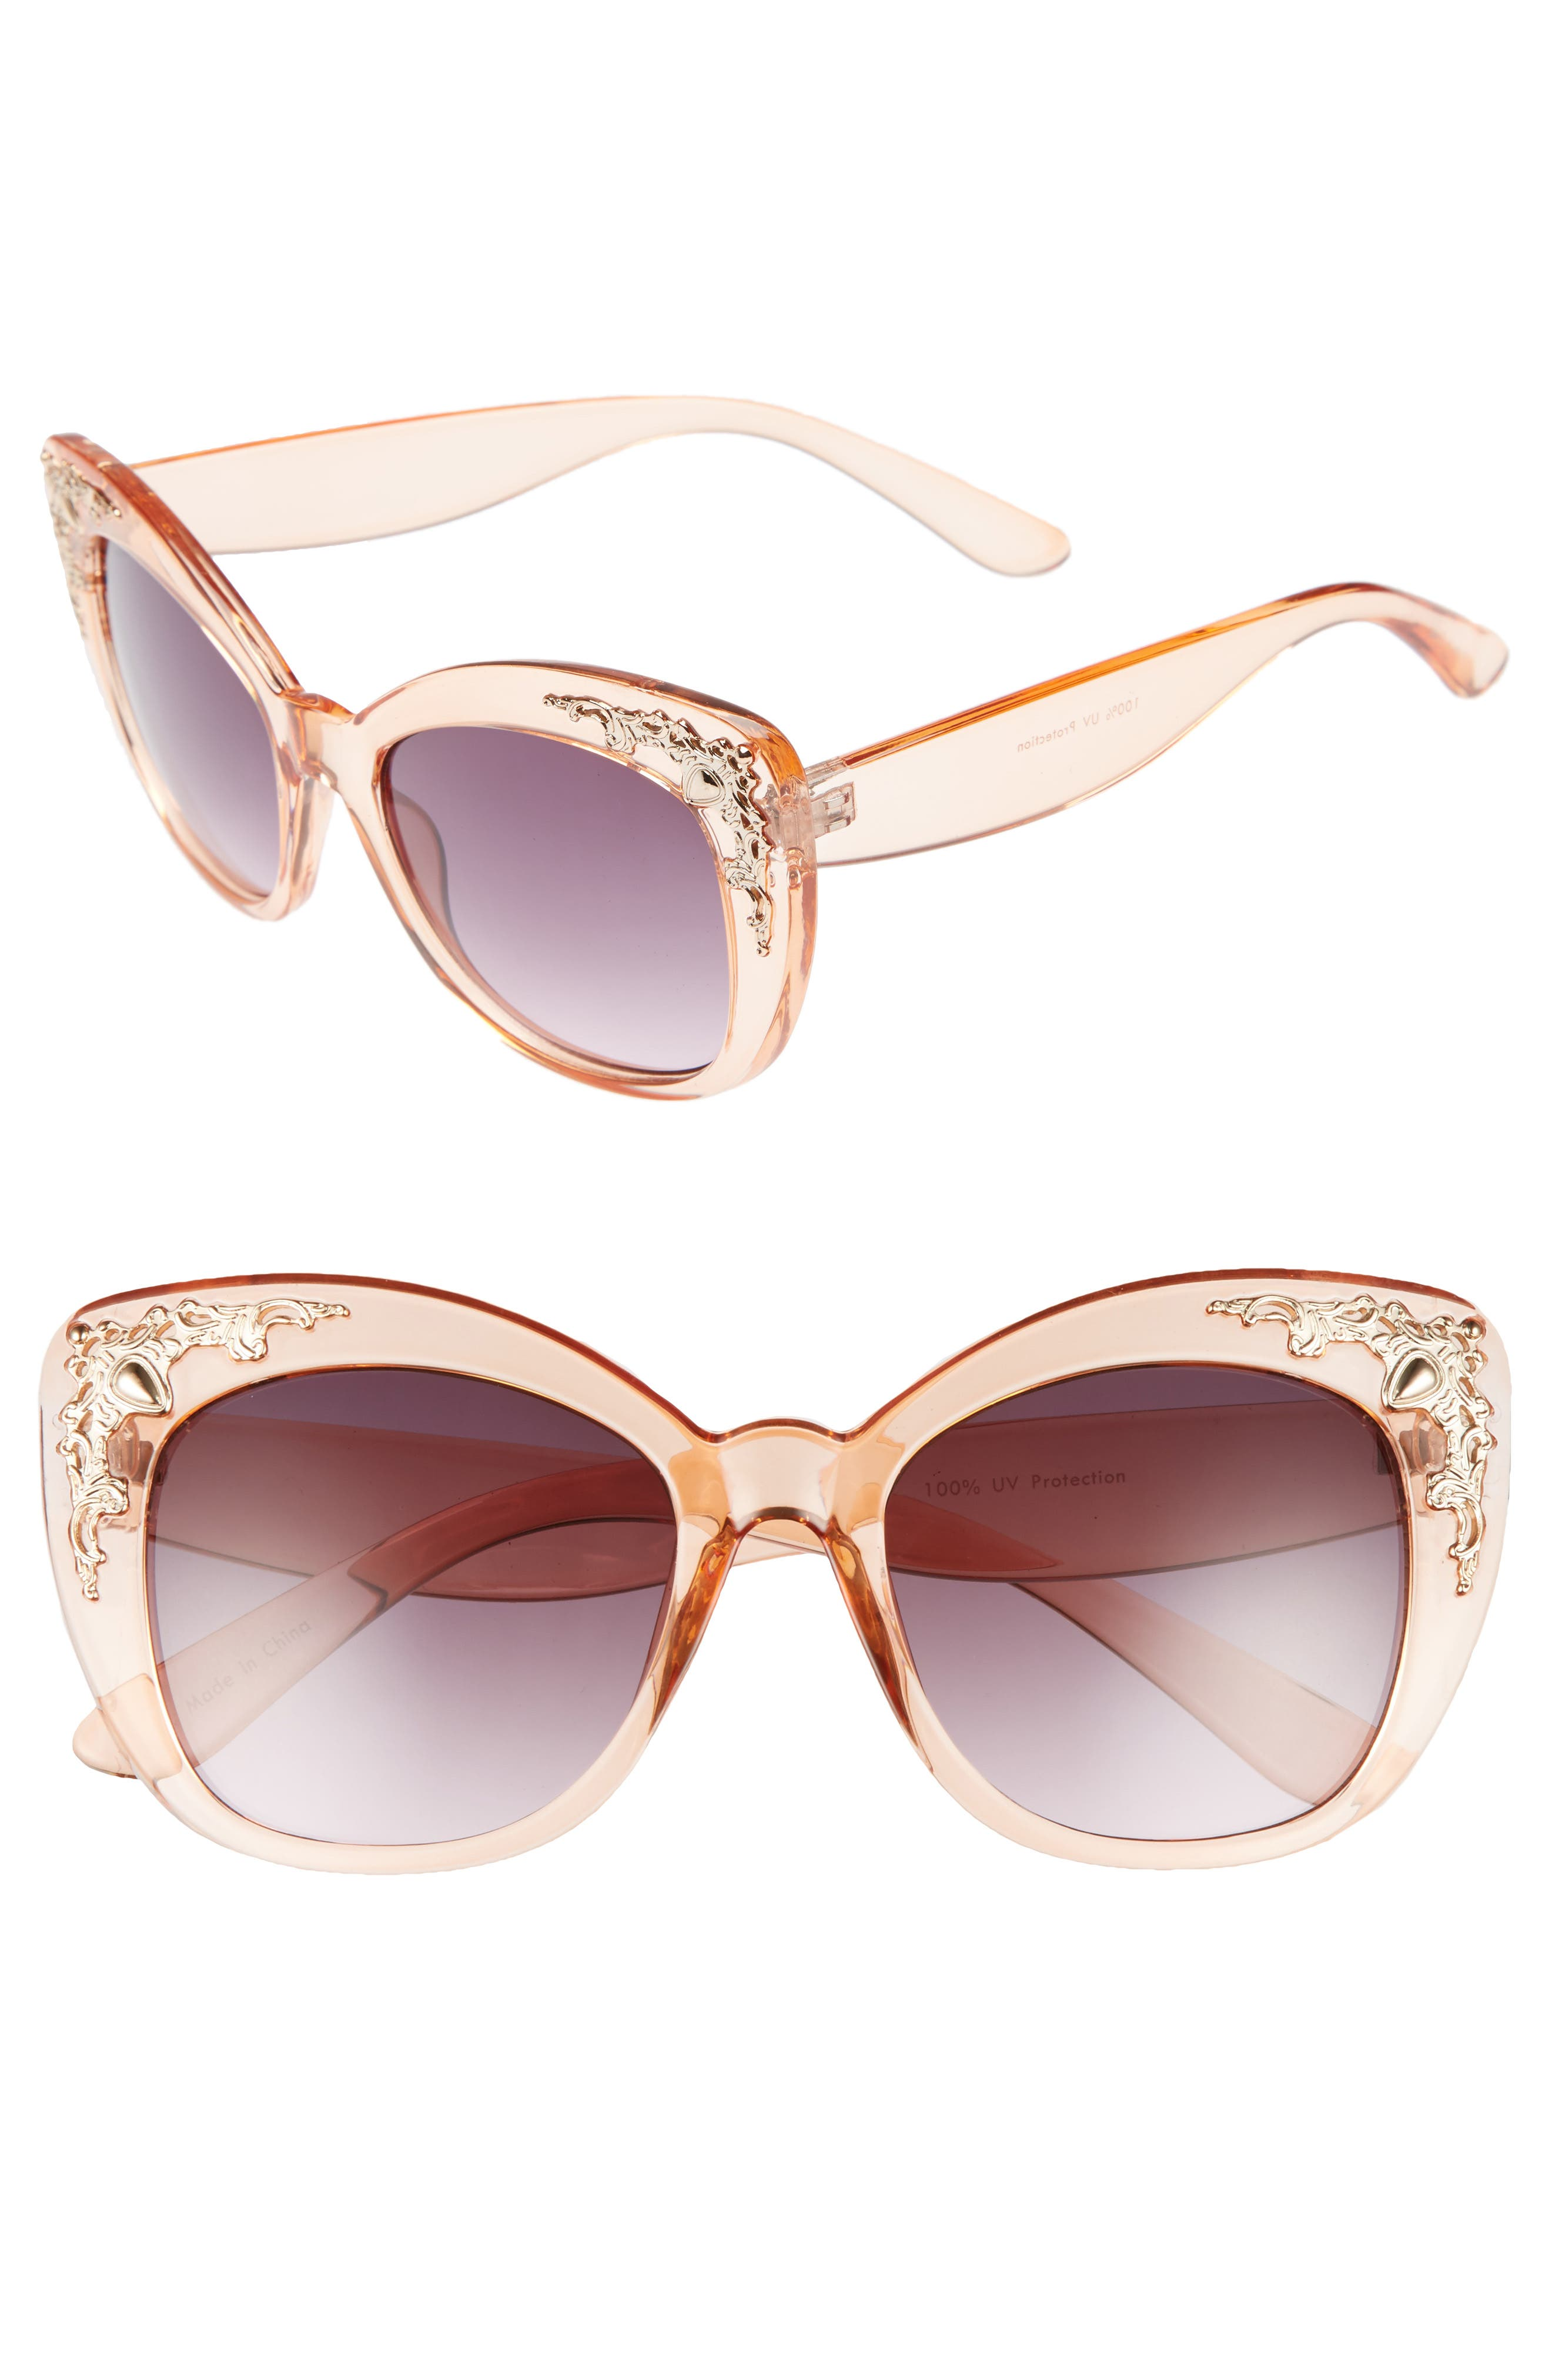 54mm Embellished Cat Eye Sunglasses,                             Main thumbnail 1, color,                             Gold